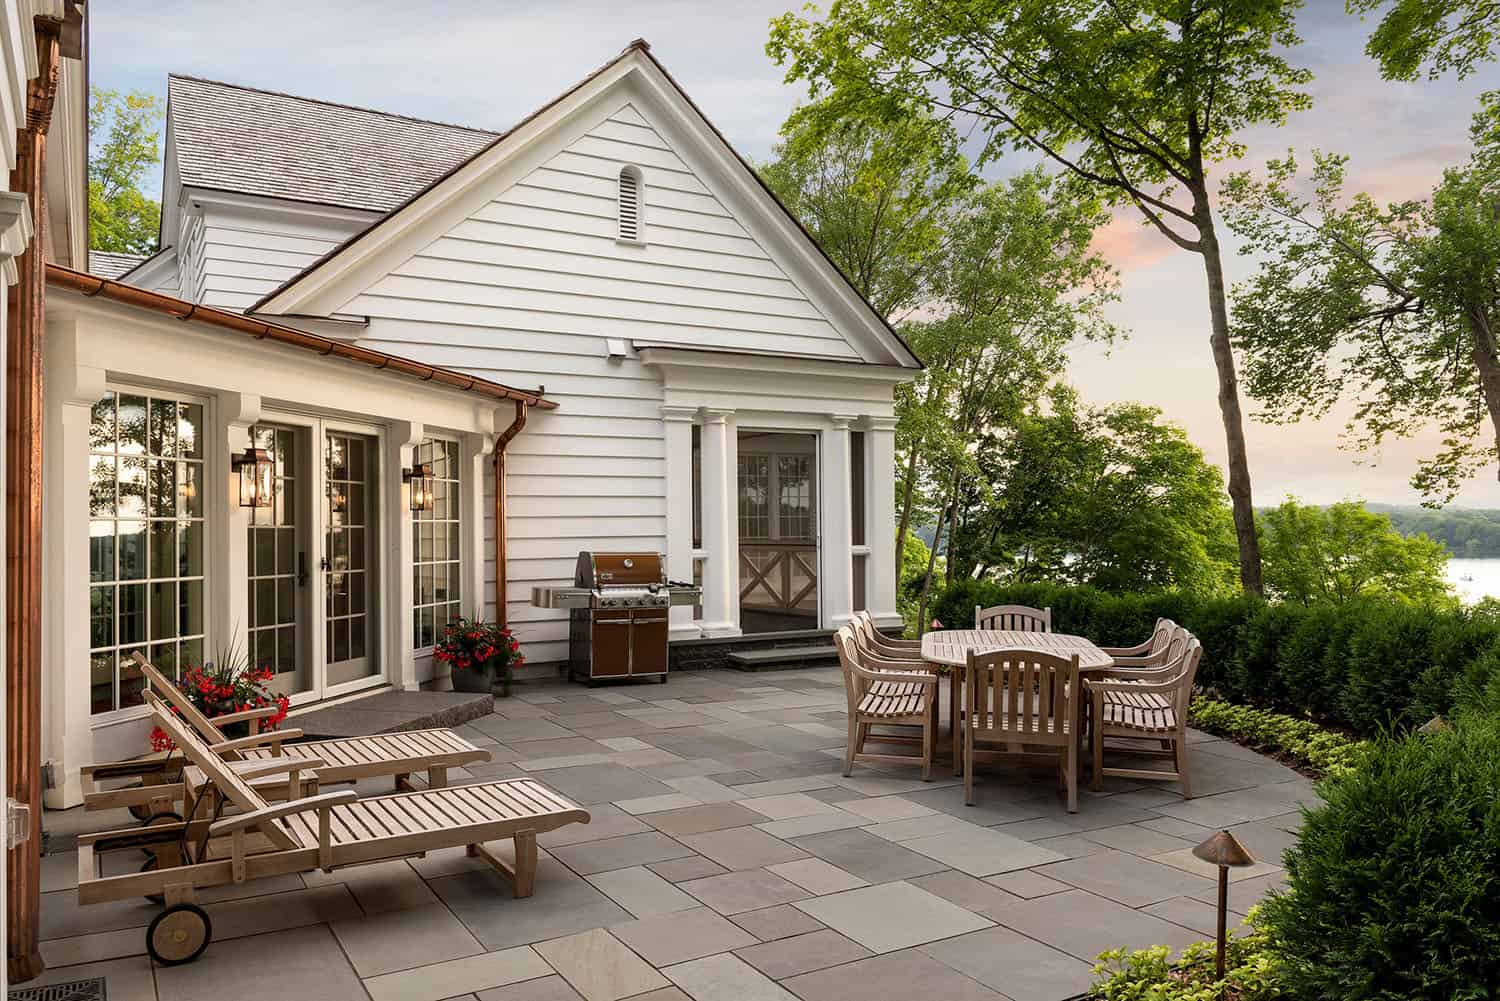 colonial-style-home-patio